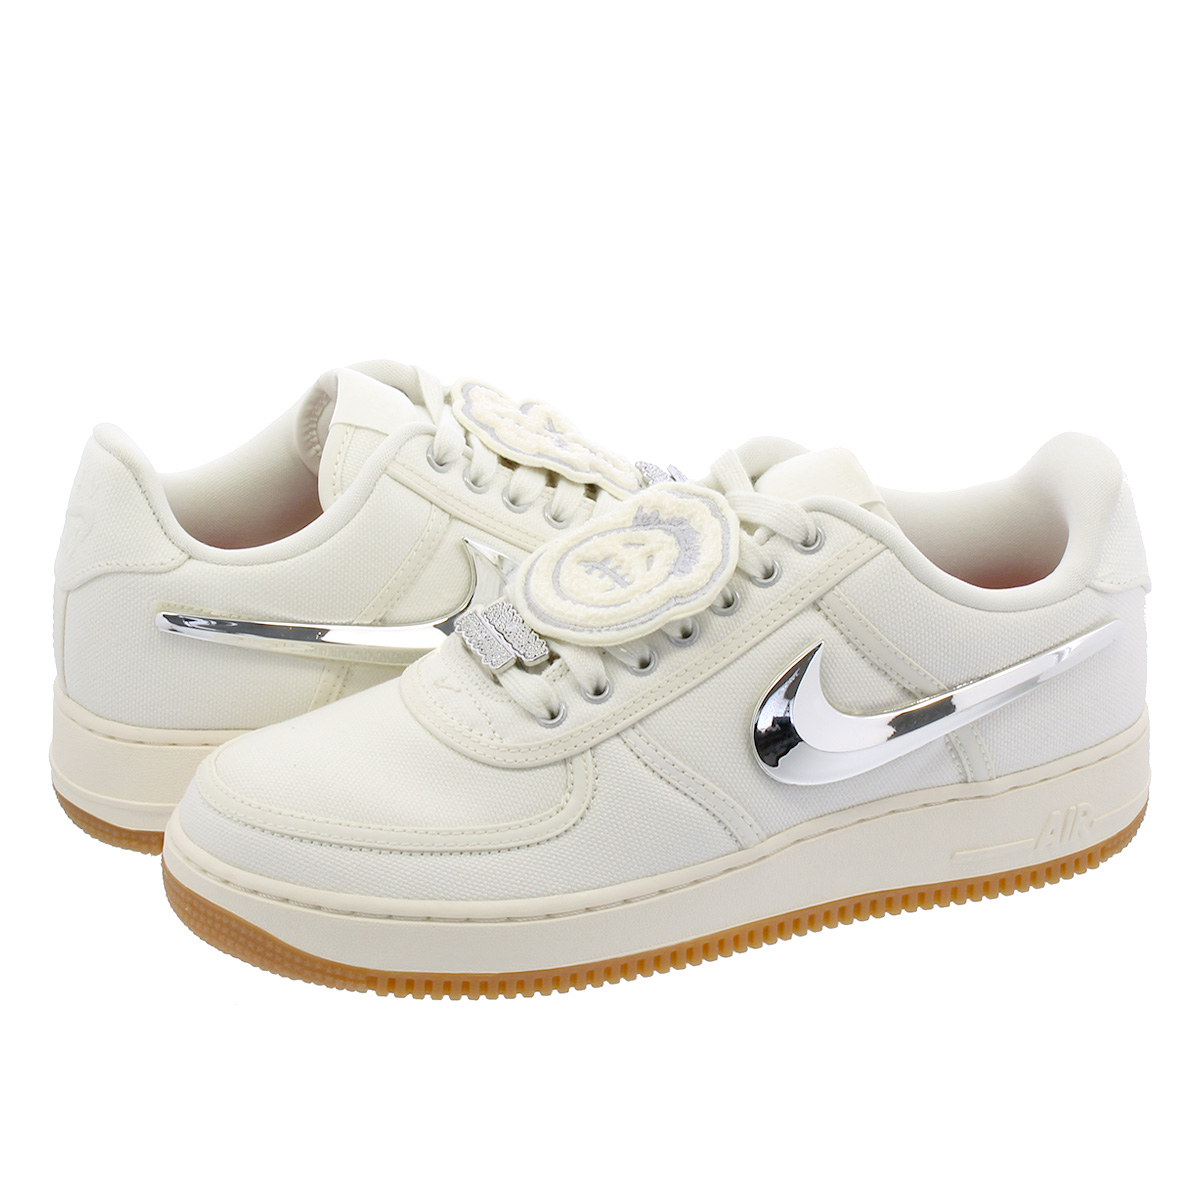 NIKE AIR FORCE 1 TRAVIS SCOTT Nike air force 1 Travis Scot SAIL aq4211 101